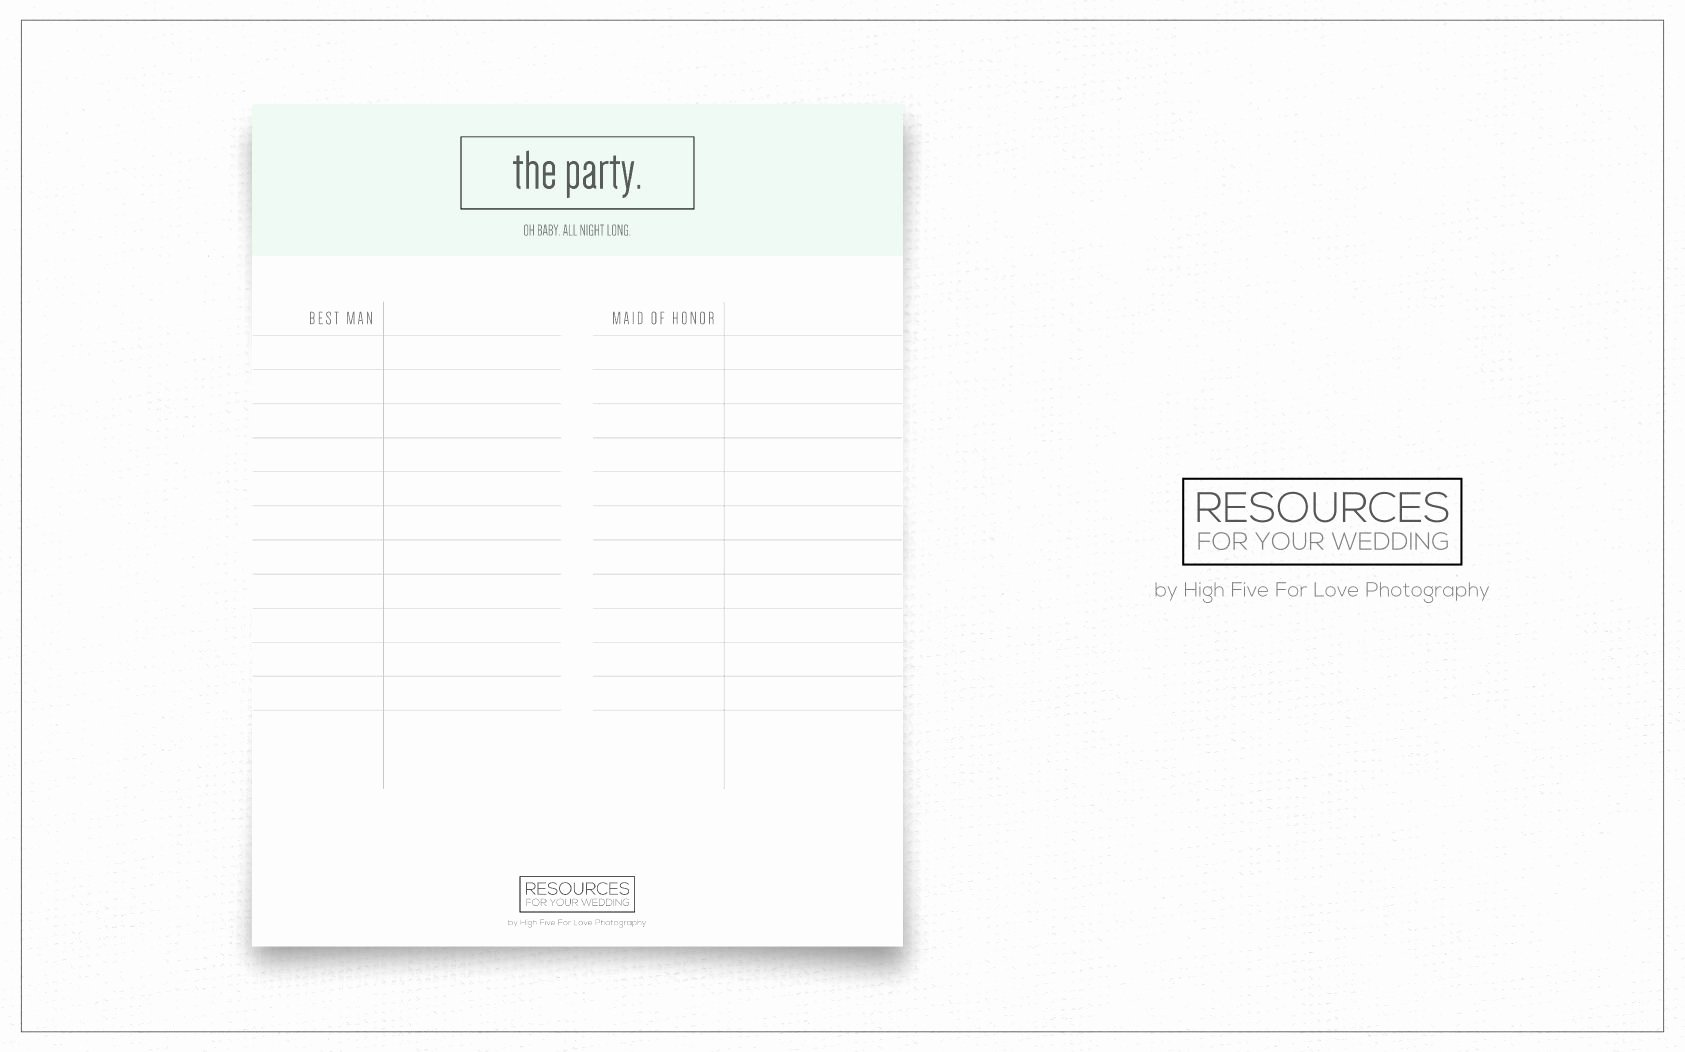 Wedding Vendors List Template Unique the Party Printable Wedding Planning Resources by High